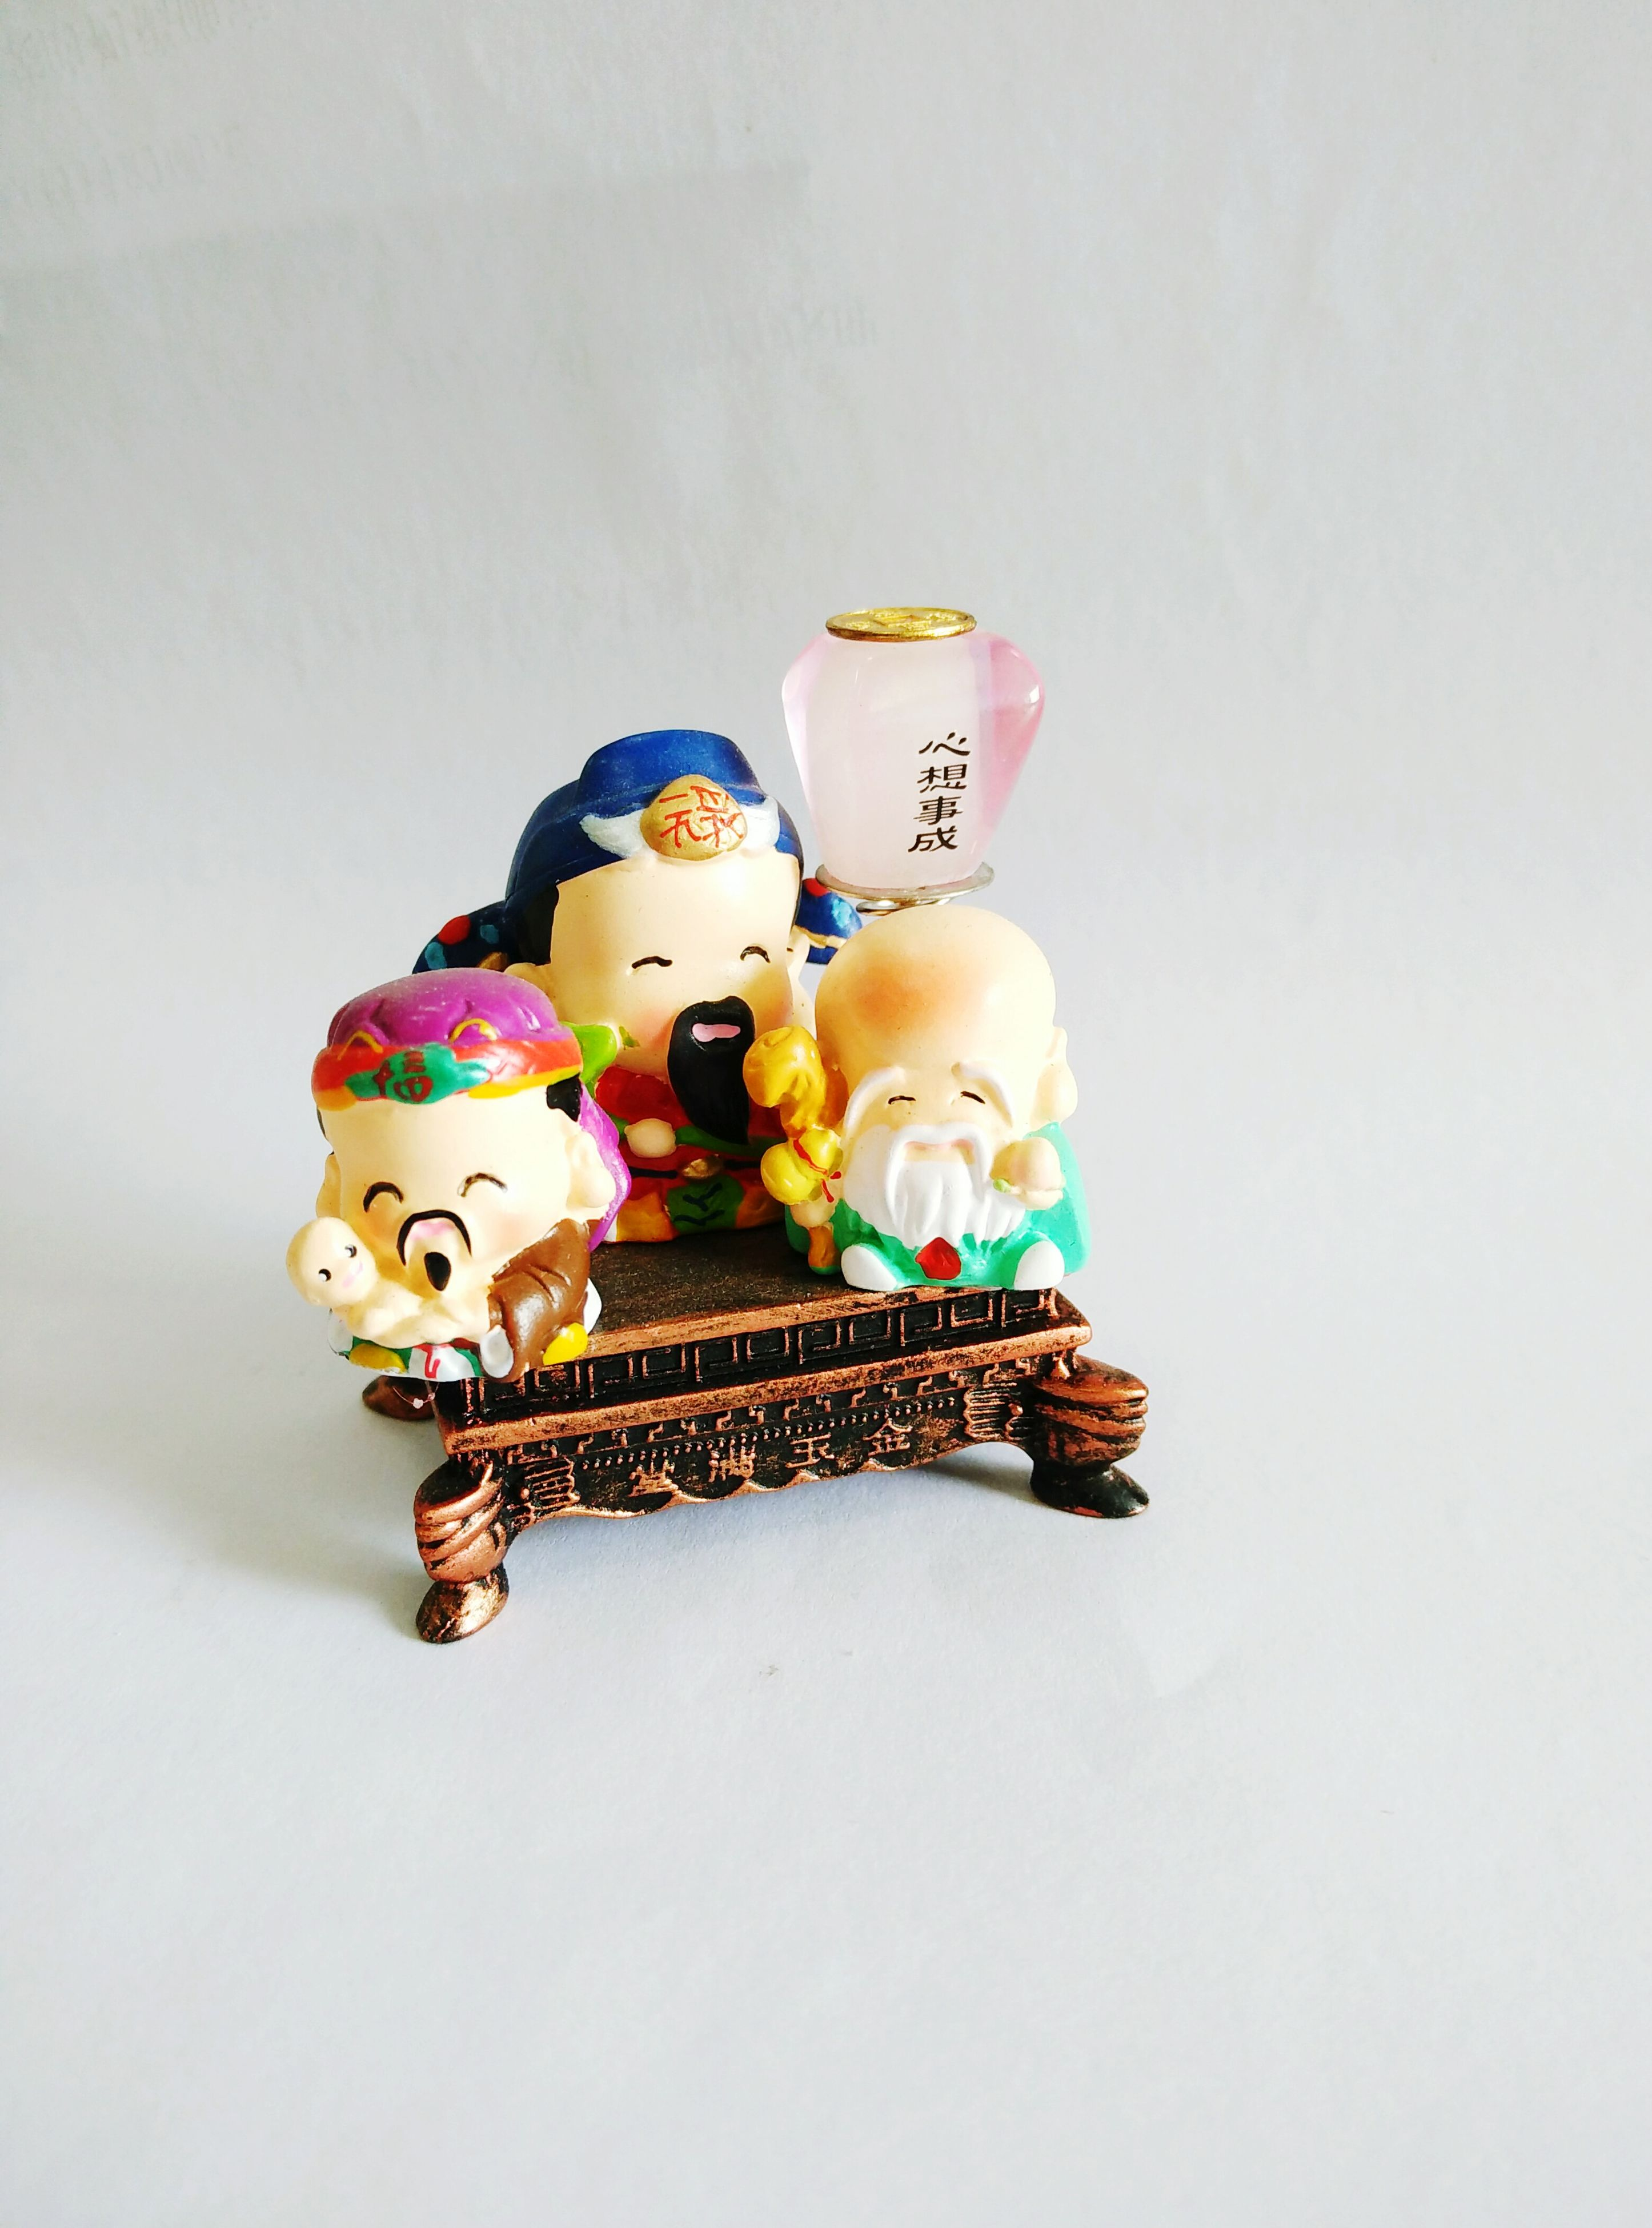 art and craft, human representation, art, creativity, animal representation, toy, still life, indoors, figurine, sculpture, craft, statue, multi colored, copy space, close-up, wall - building feature, no people, decoration